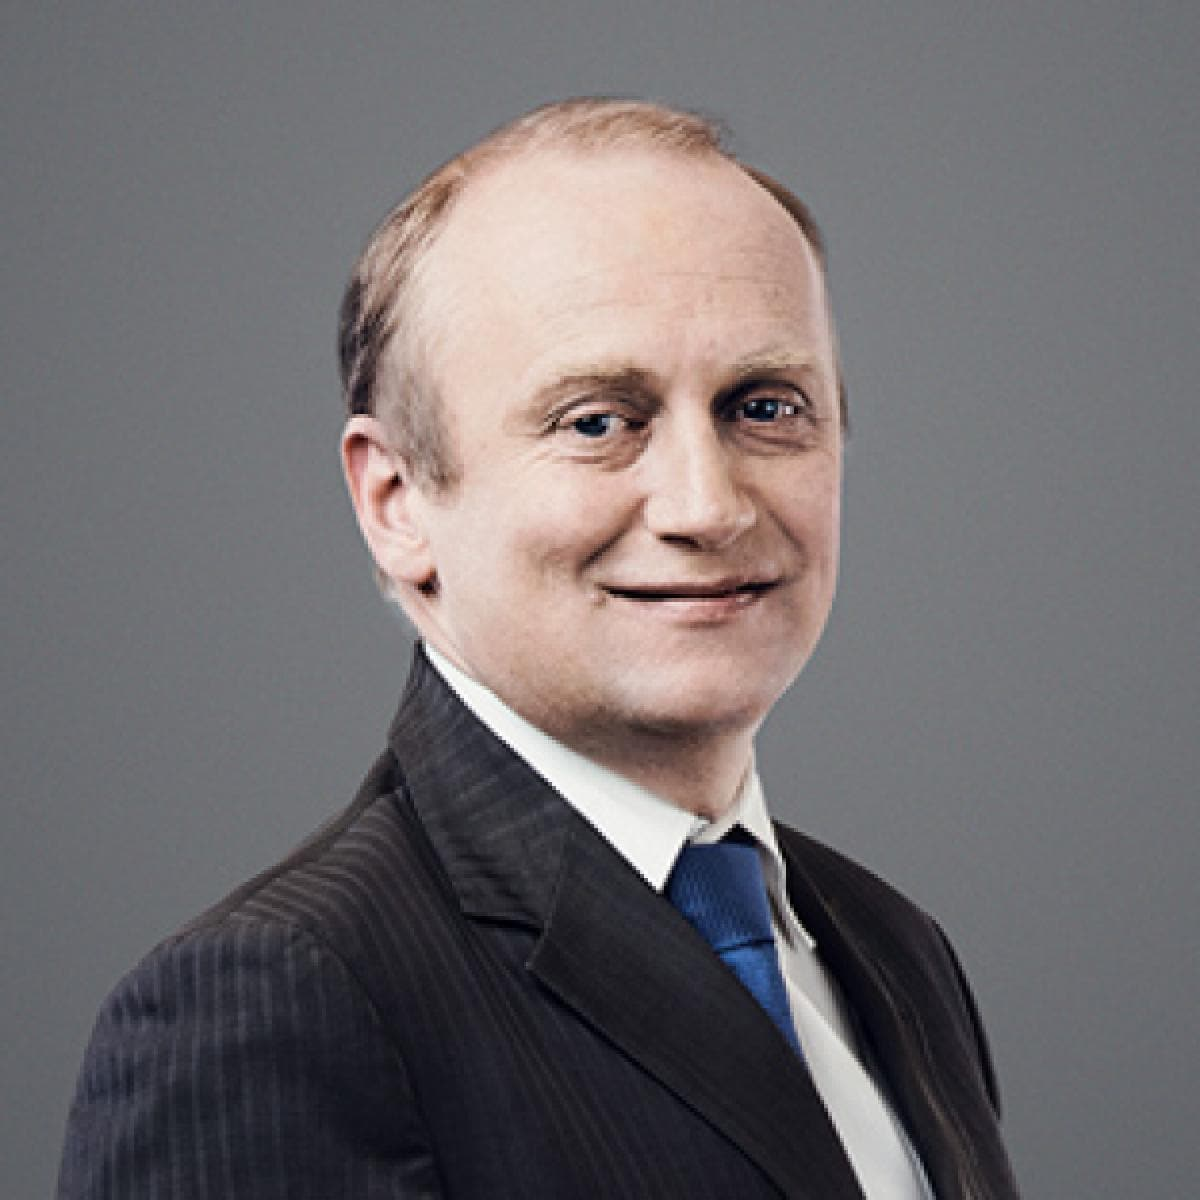 laurent david chief executive officer of bnp paribas personal